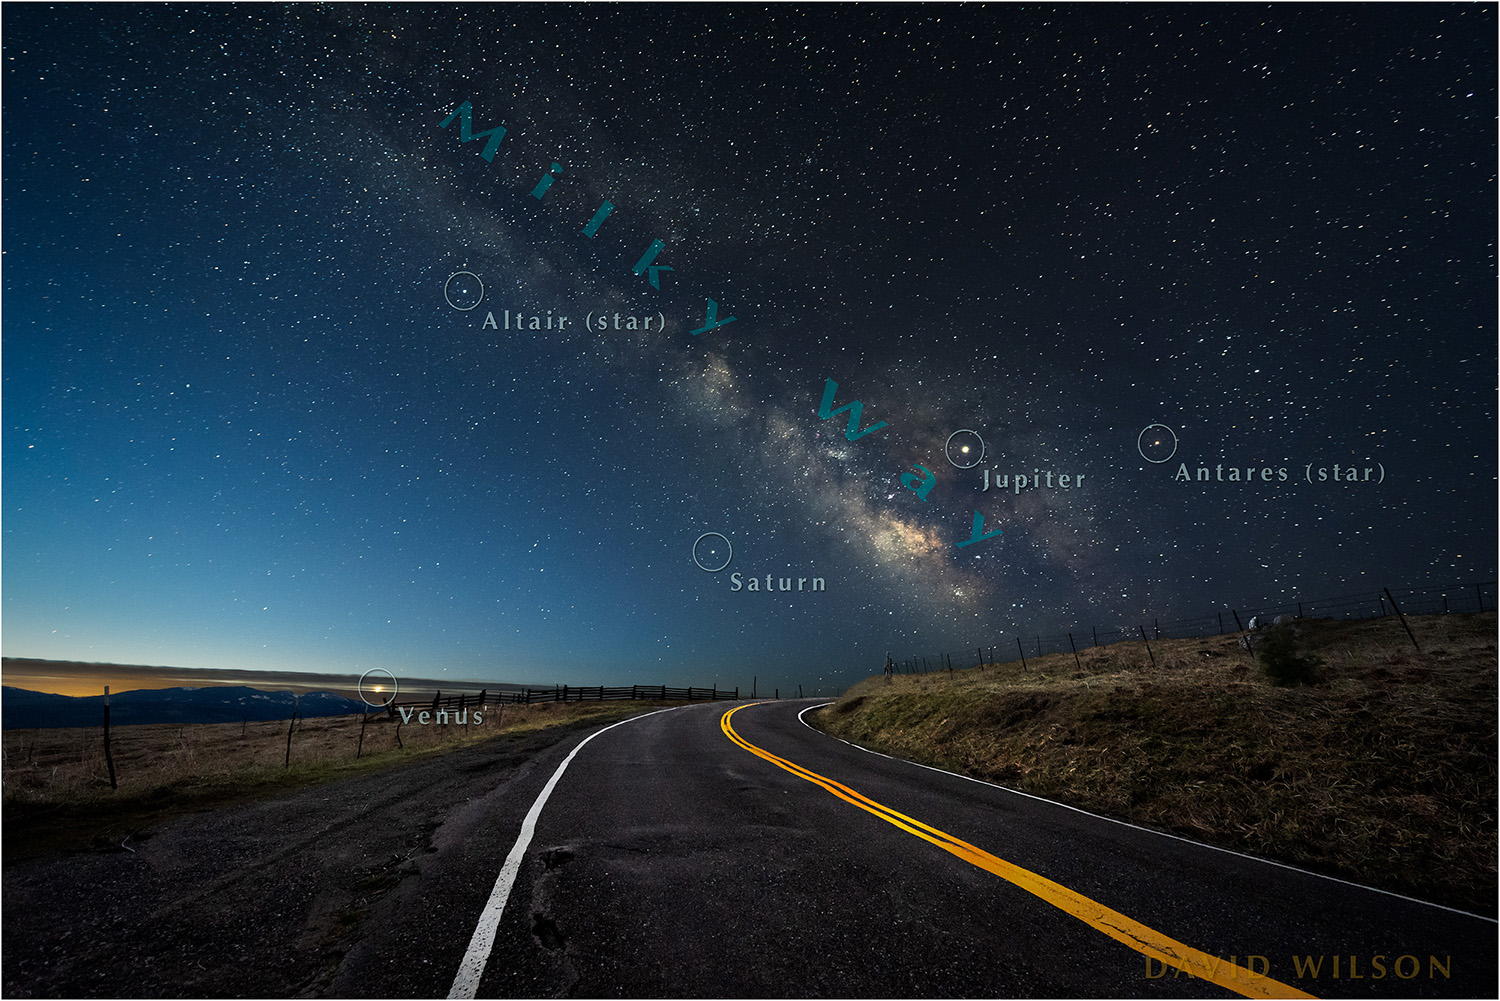 Annotated version showing three neighboring planets and a couple notable stars. The Core of our galaxy is the more detailed area of the Milky Way low on the horizon. [Note: This map can lead the aliens directly to us, so be responsible.]